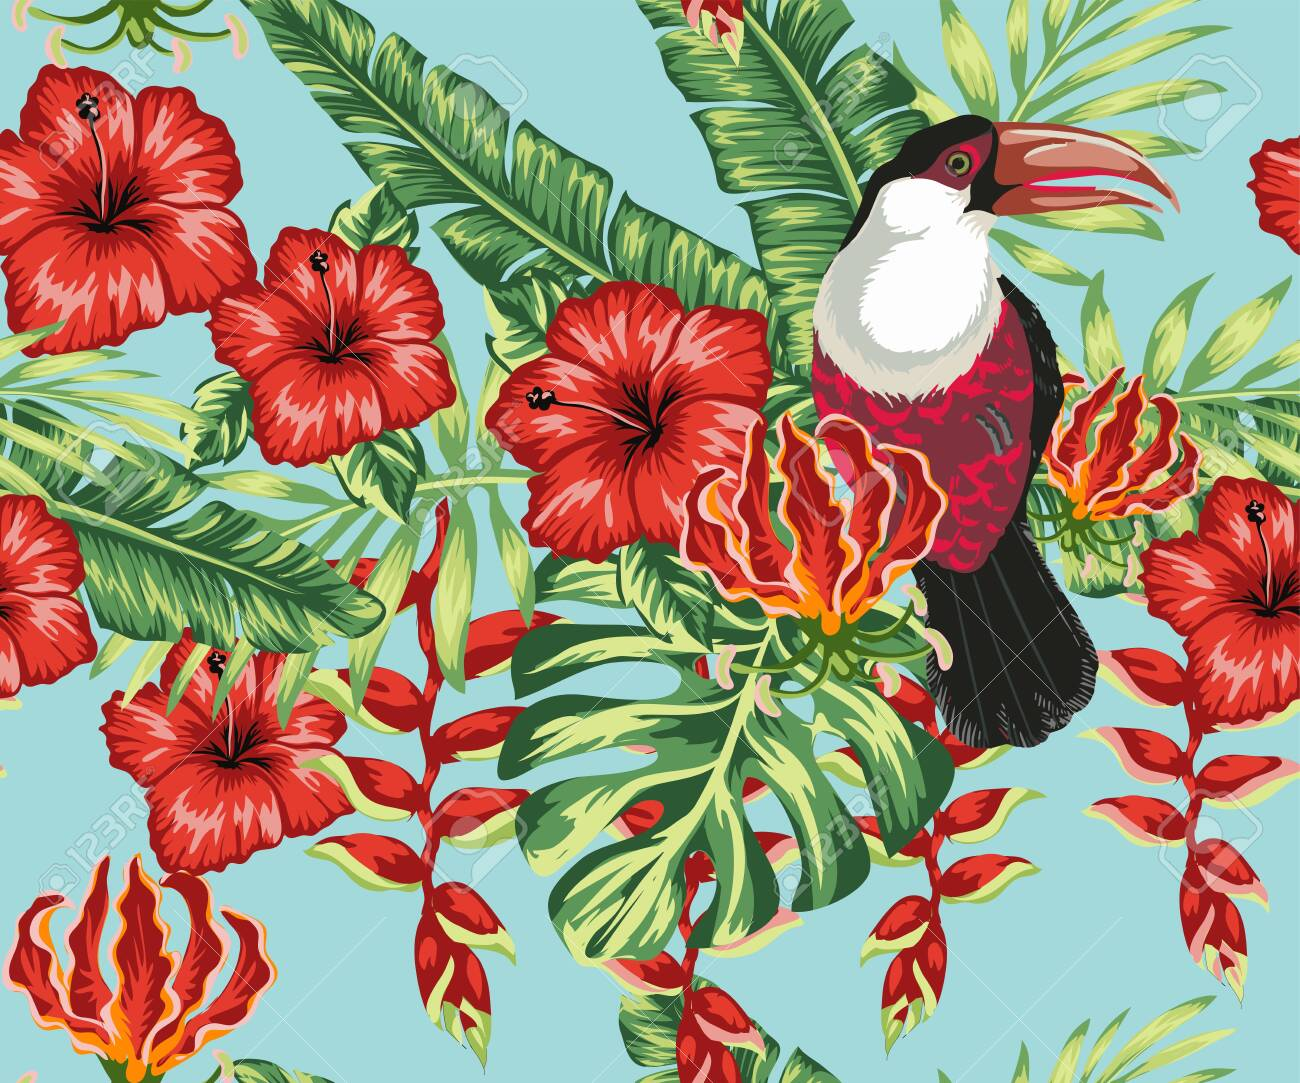 Beautiful seamless vector floral summer pattern background with toucan, palm leaves, hibiscus, plumeria. Ideal for wallpapers, background web pages, surface textures, textiles. - 149898444